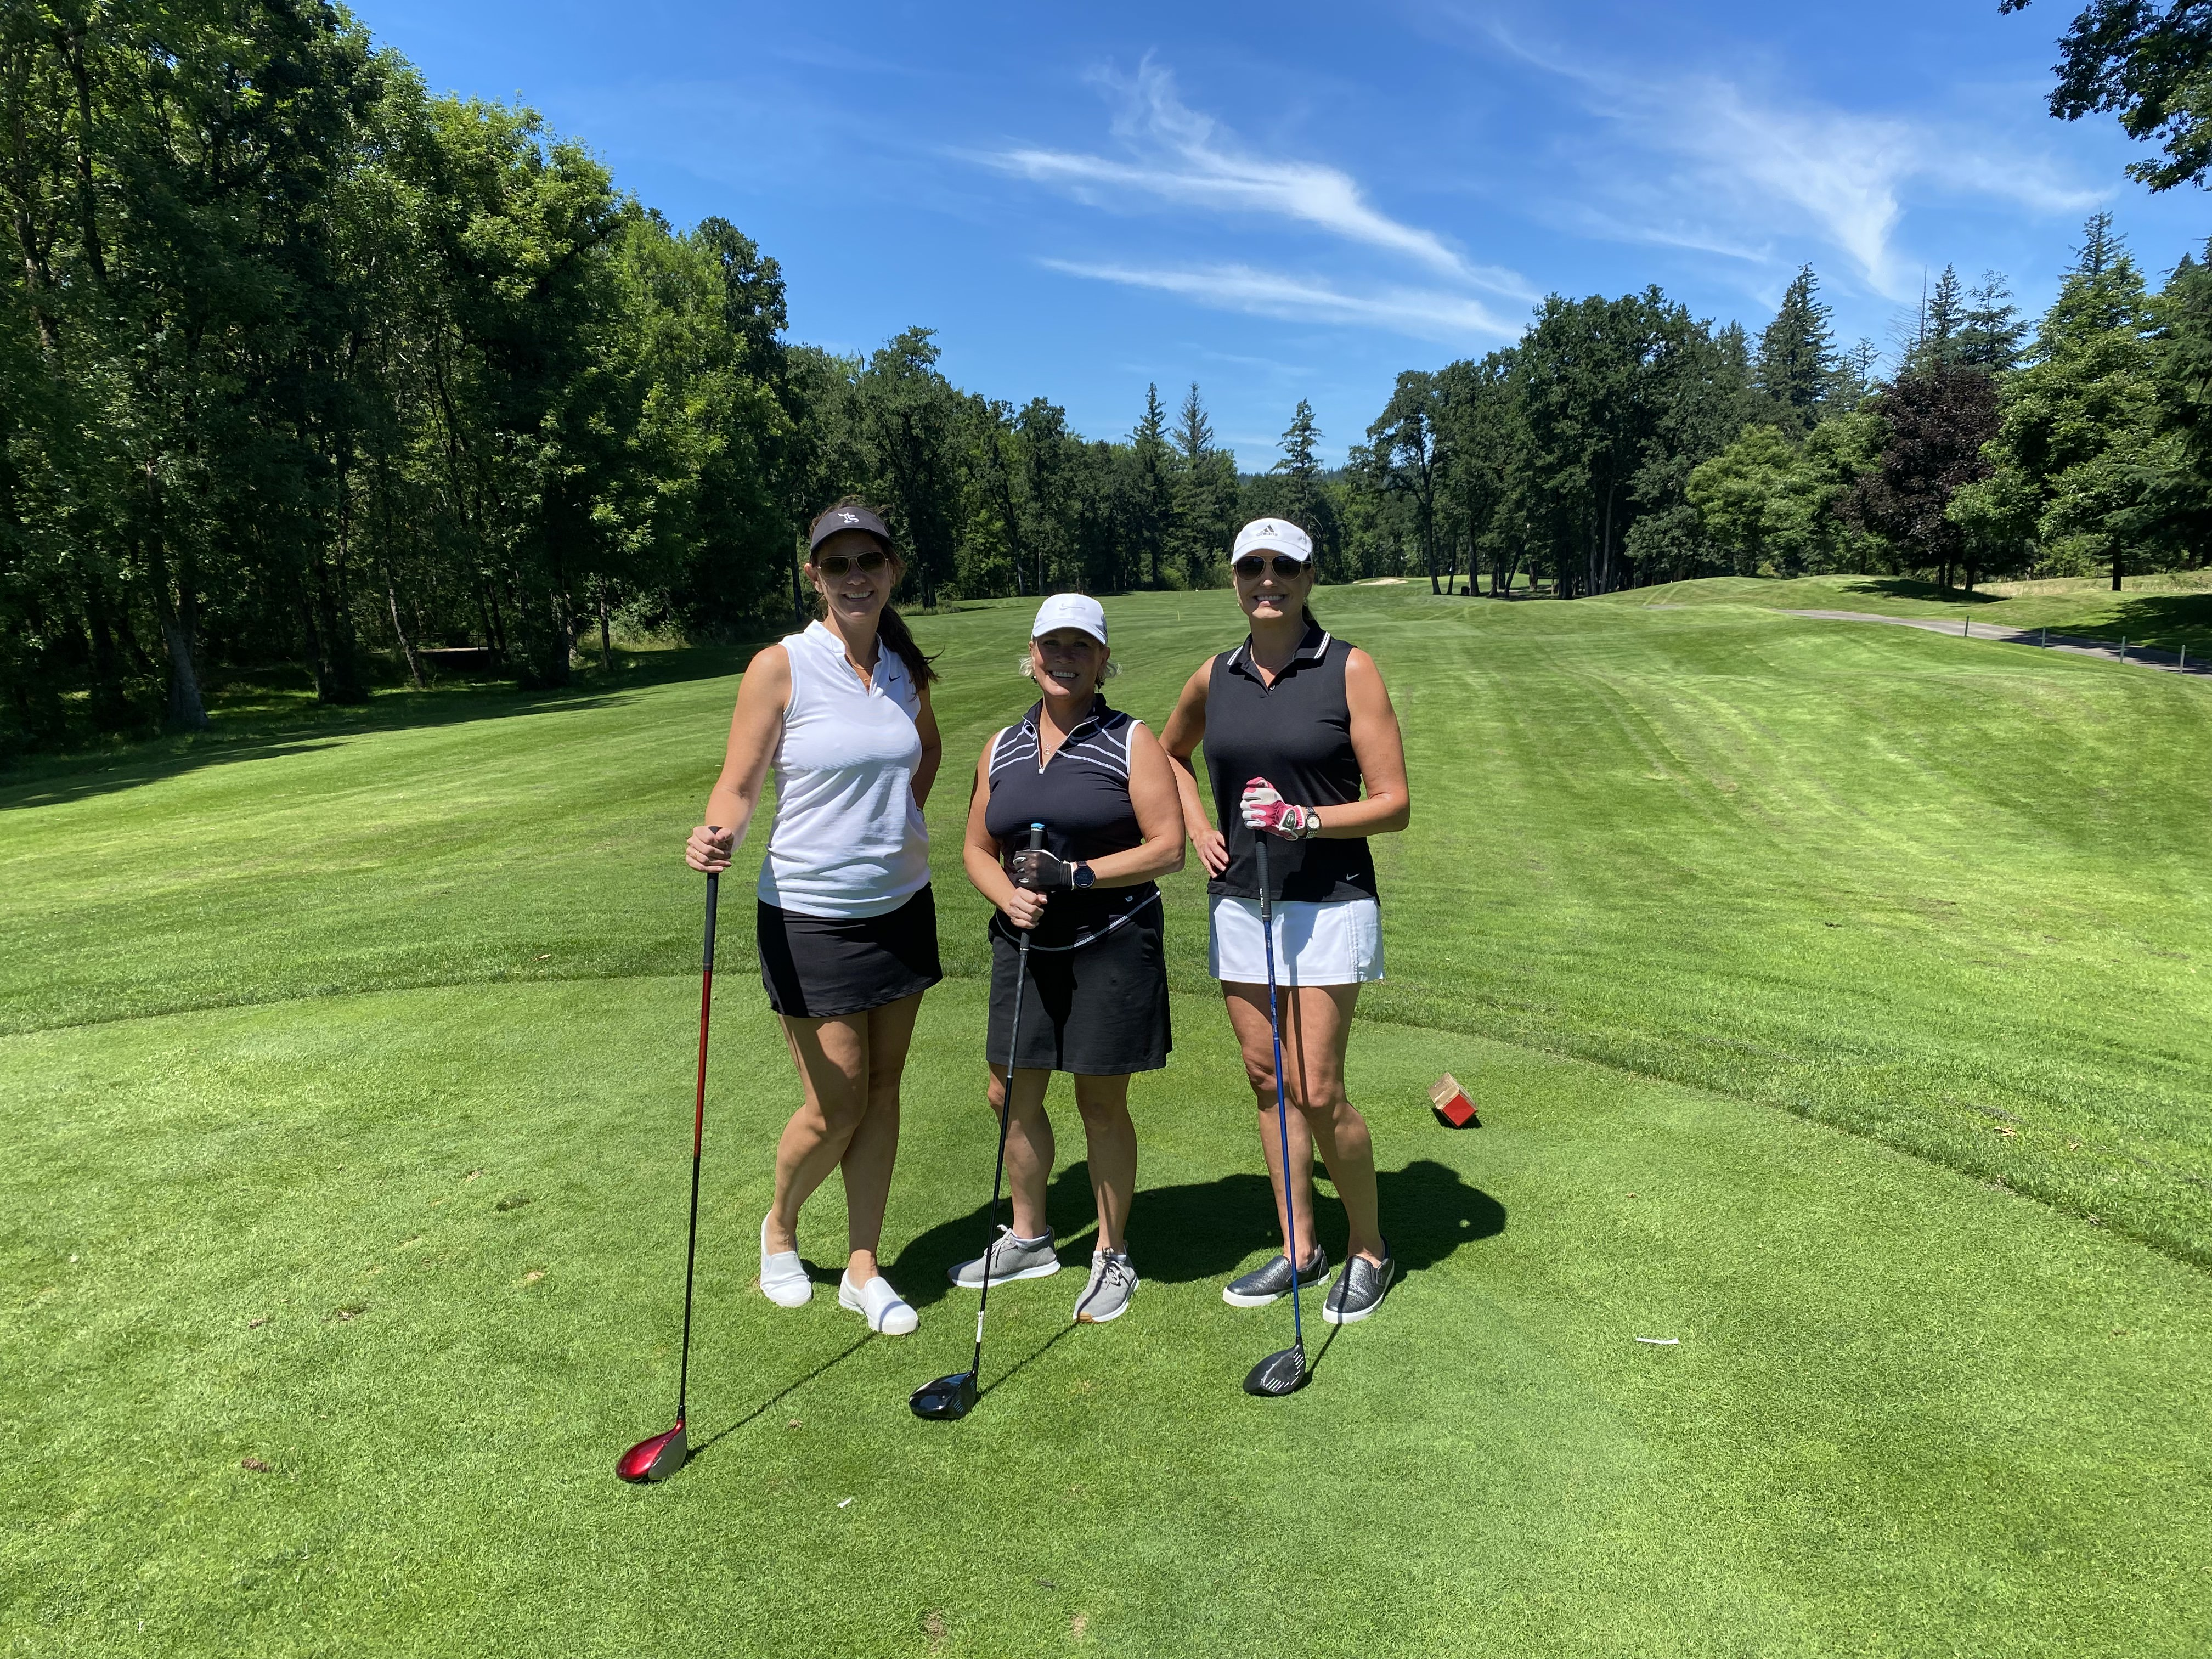 Three women golfers pose on the tee box with their clubs, smiling.